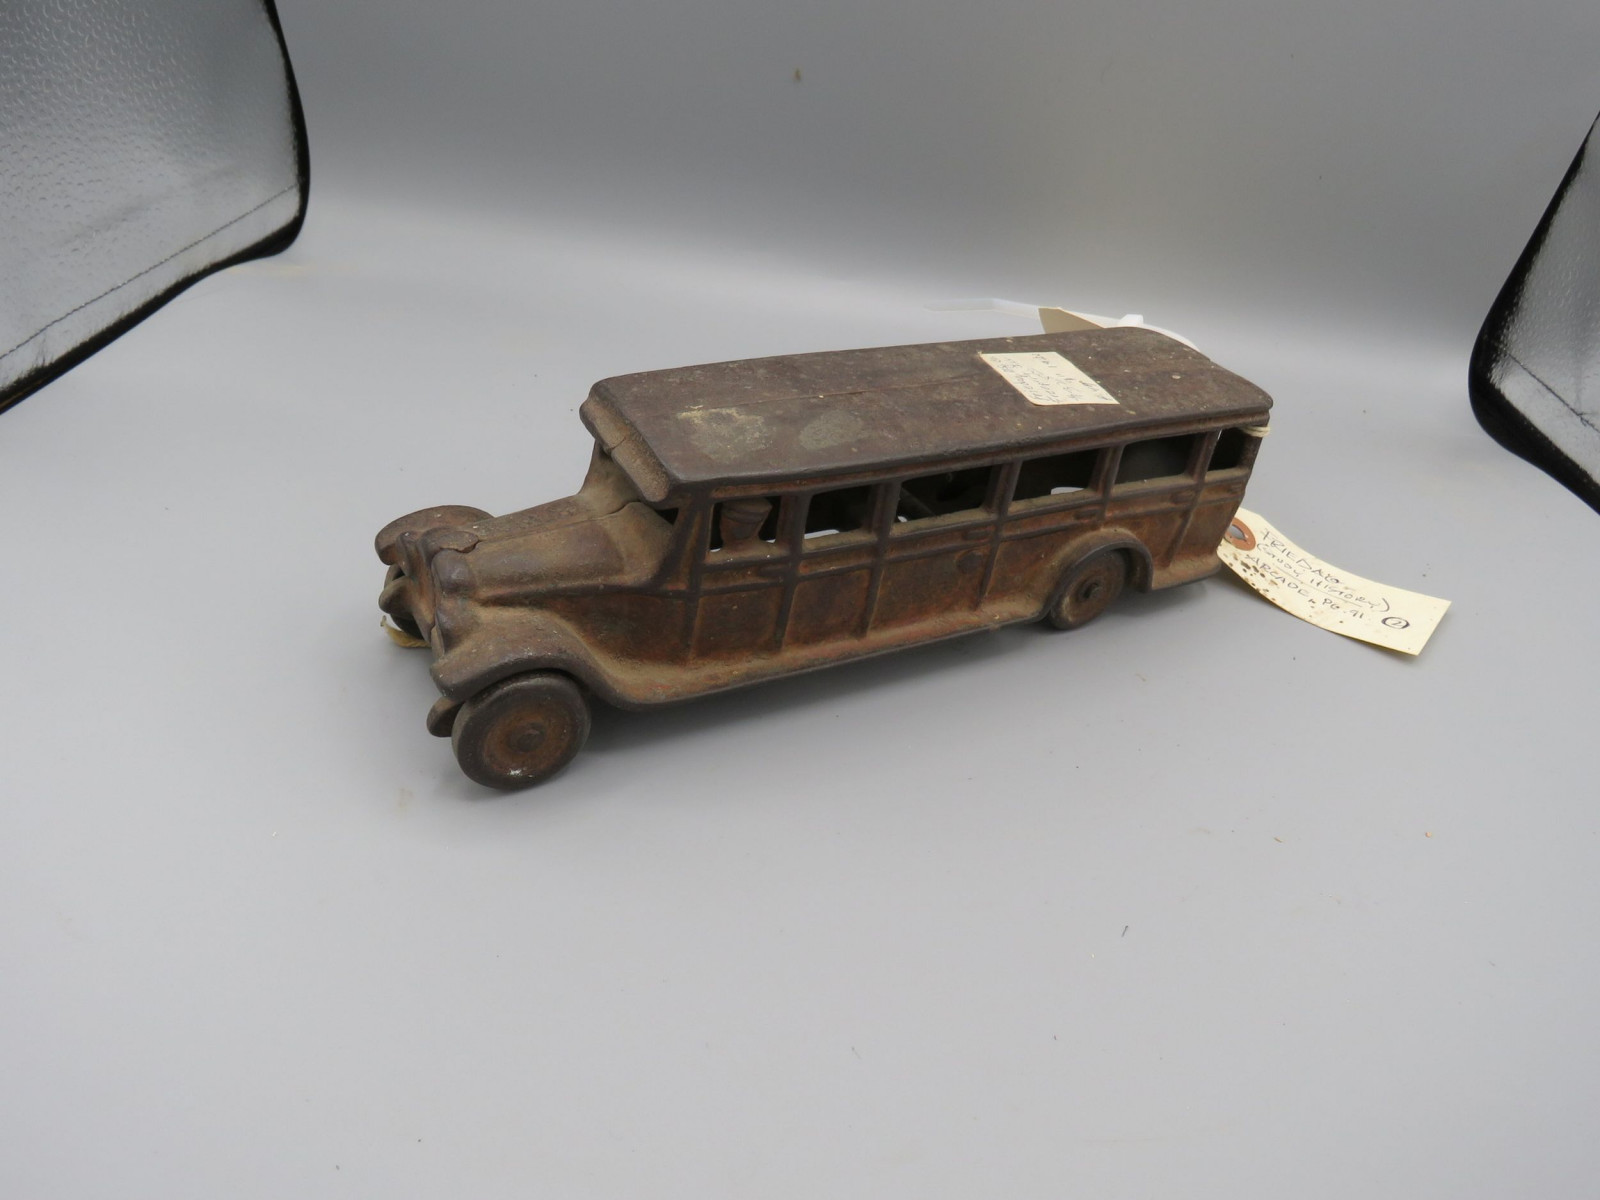 Friedag Manufacturing Company Cast Iron Bus @1920 Approx. 10 inches - Image 2